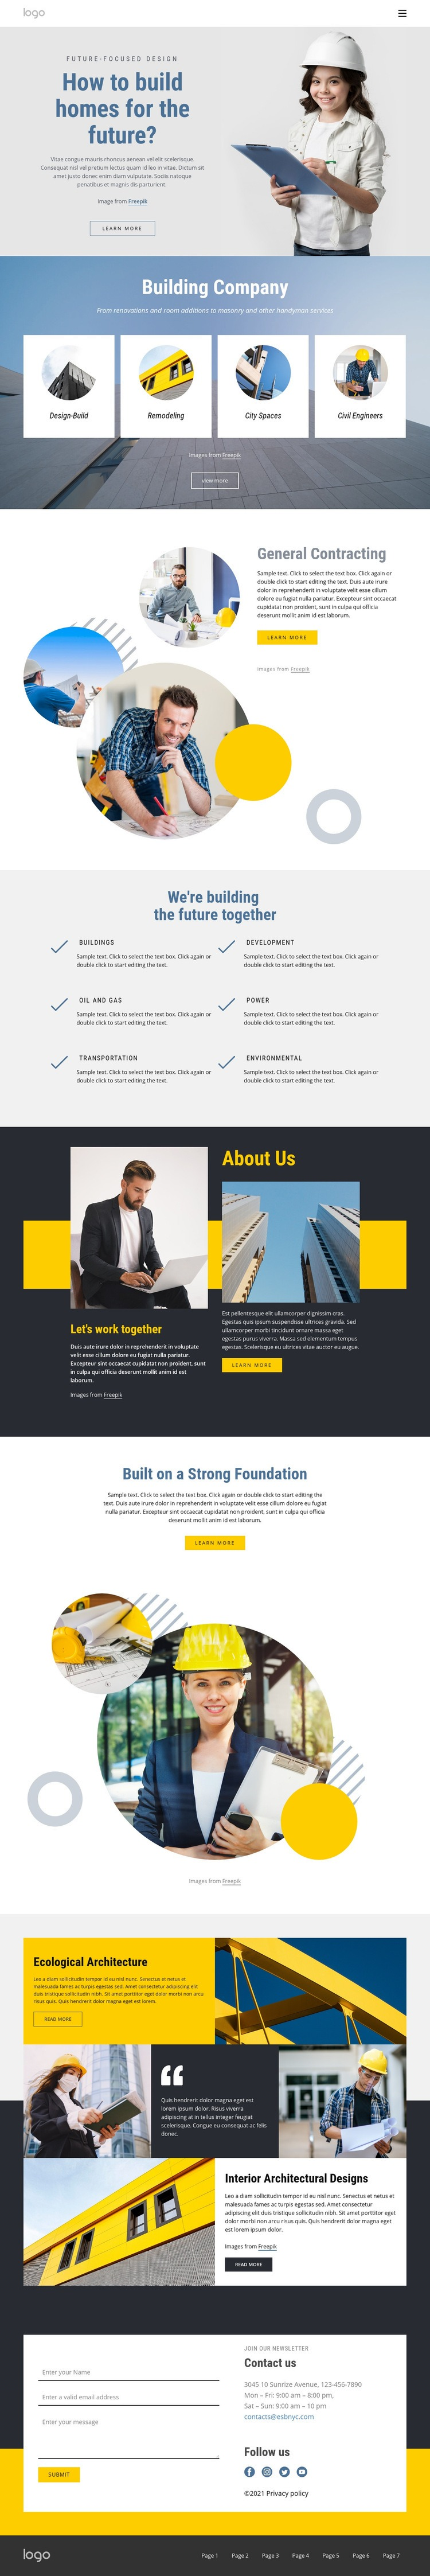 General contracting company Web Page Design